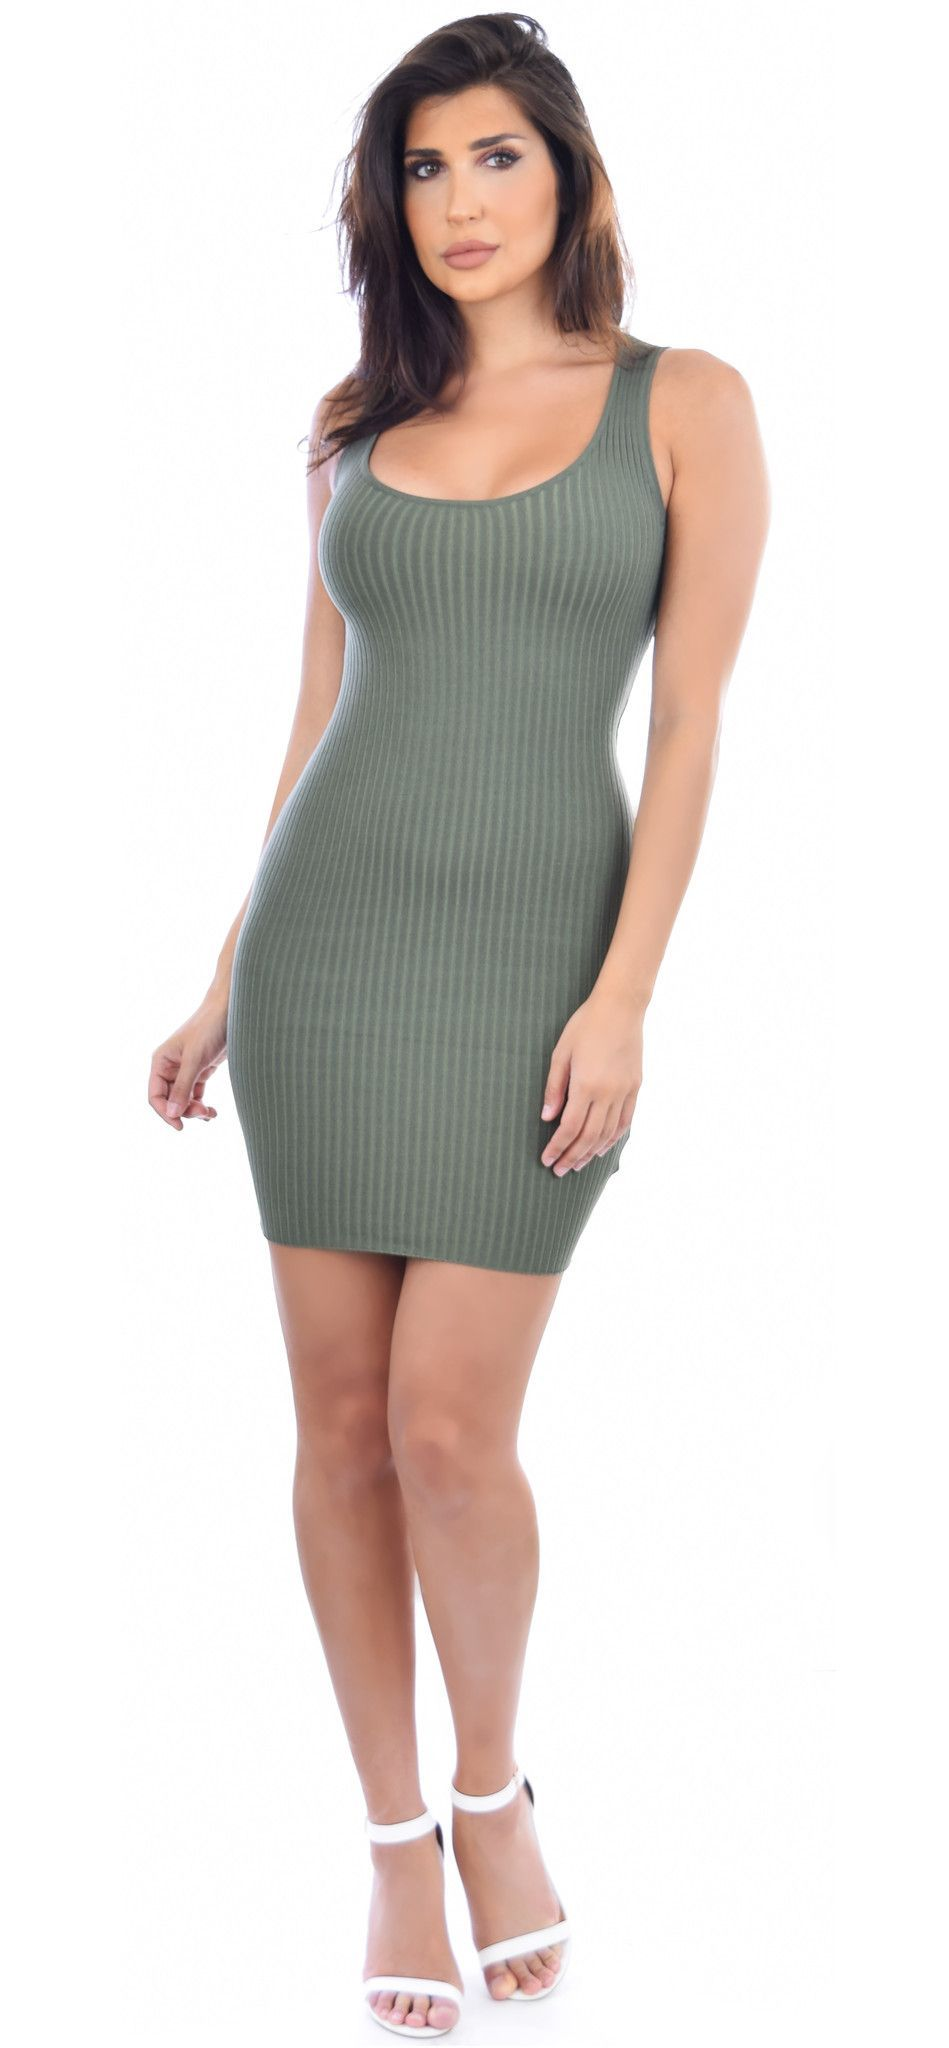 """- 70% Rayon, 30% Nylon - Mini length - Cross back design - Stretchy - Ribbed - Round neckline - Unlined - No closure Model is 5'8"""" and is wearing a size Small Models Measurements: - Bust: 36C Waist: 2"""